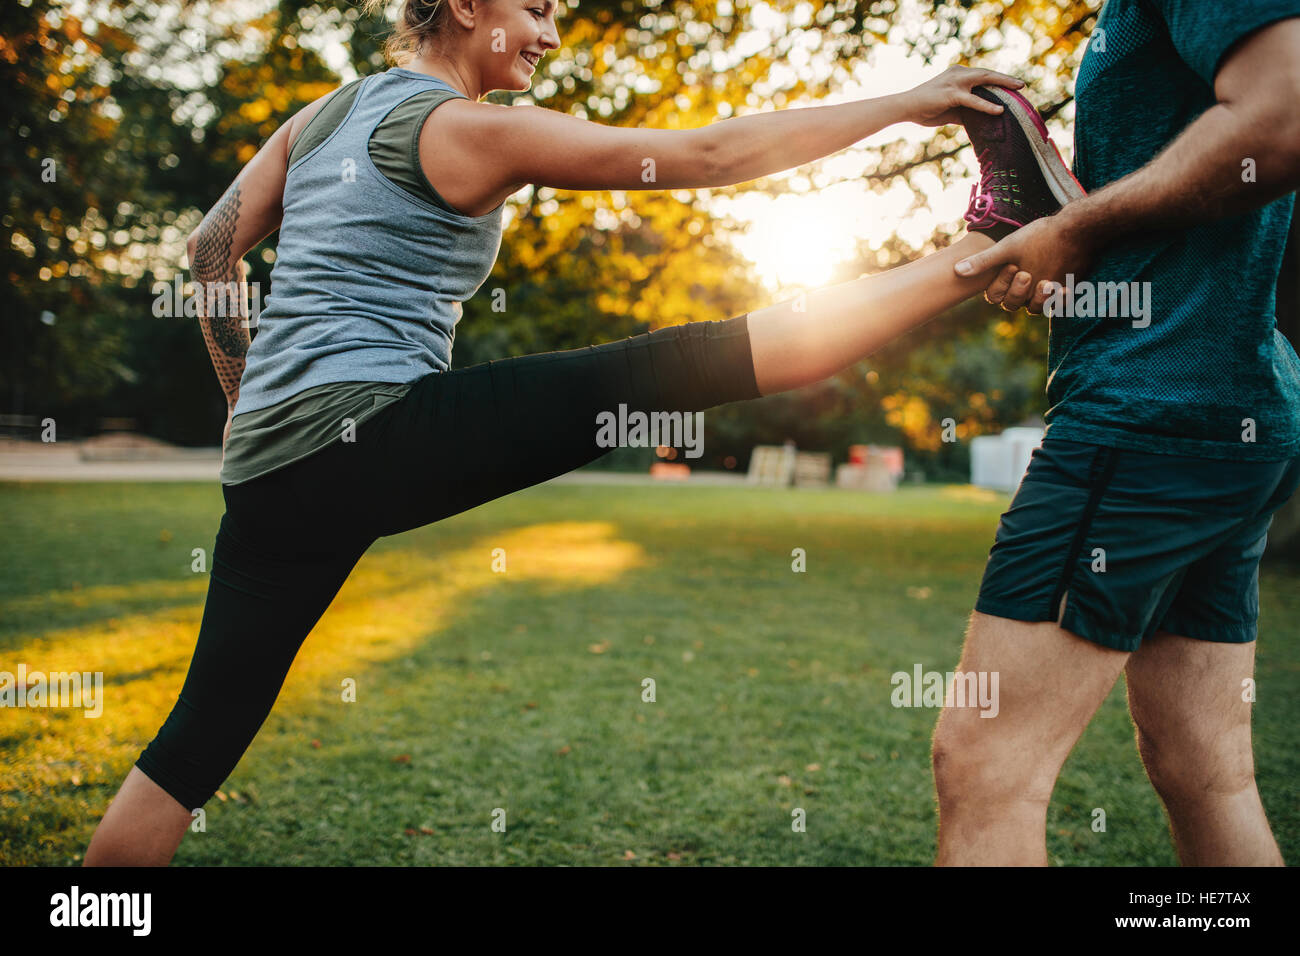 Fit young woman doing stretching exercises with the help of a personal trainer in park. Coach holding leg of female. - Stock Image